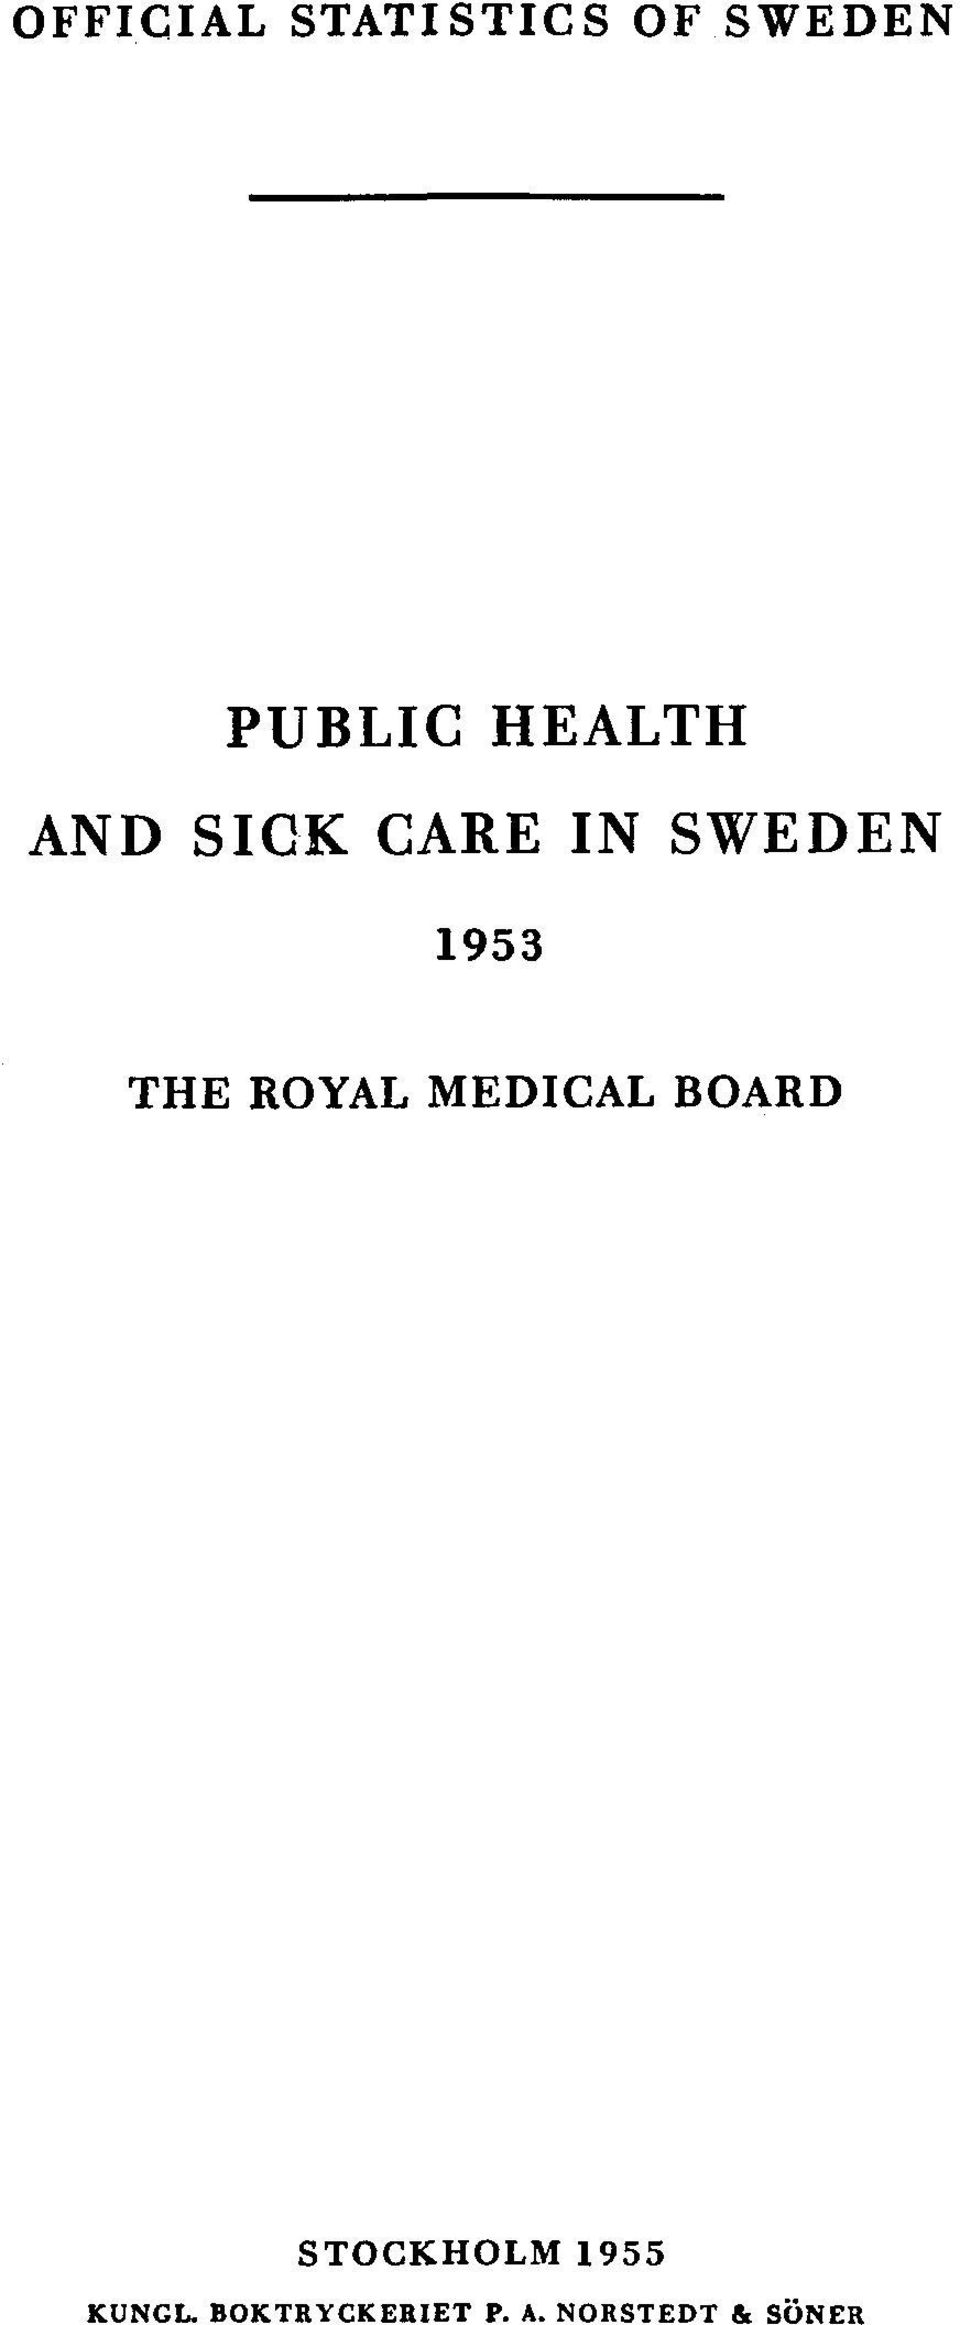 THE ROYAL MEDICAL BOARD STOCKHOLM 1955